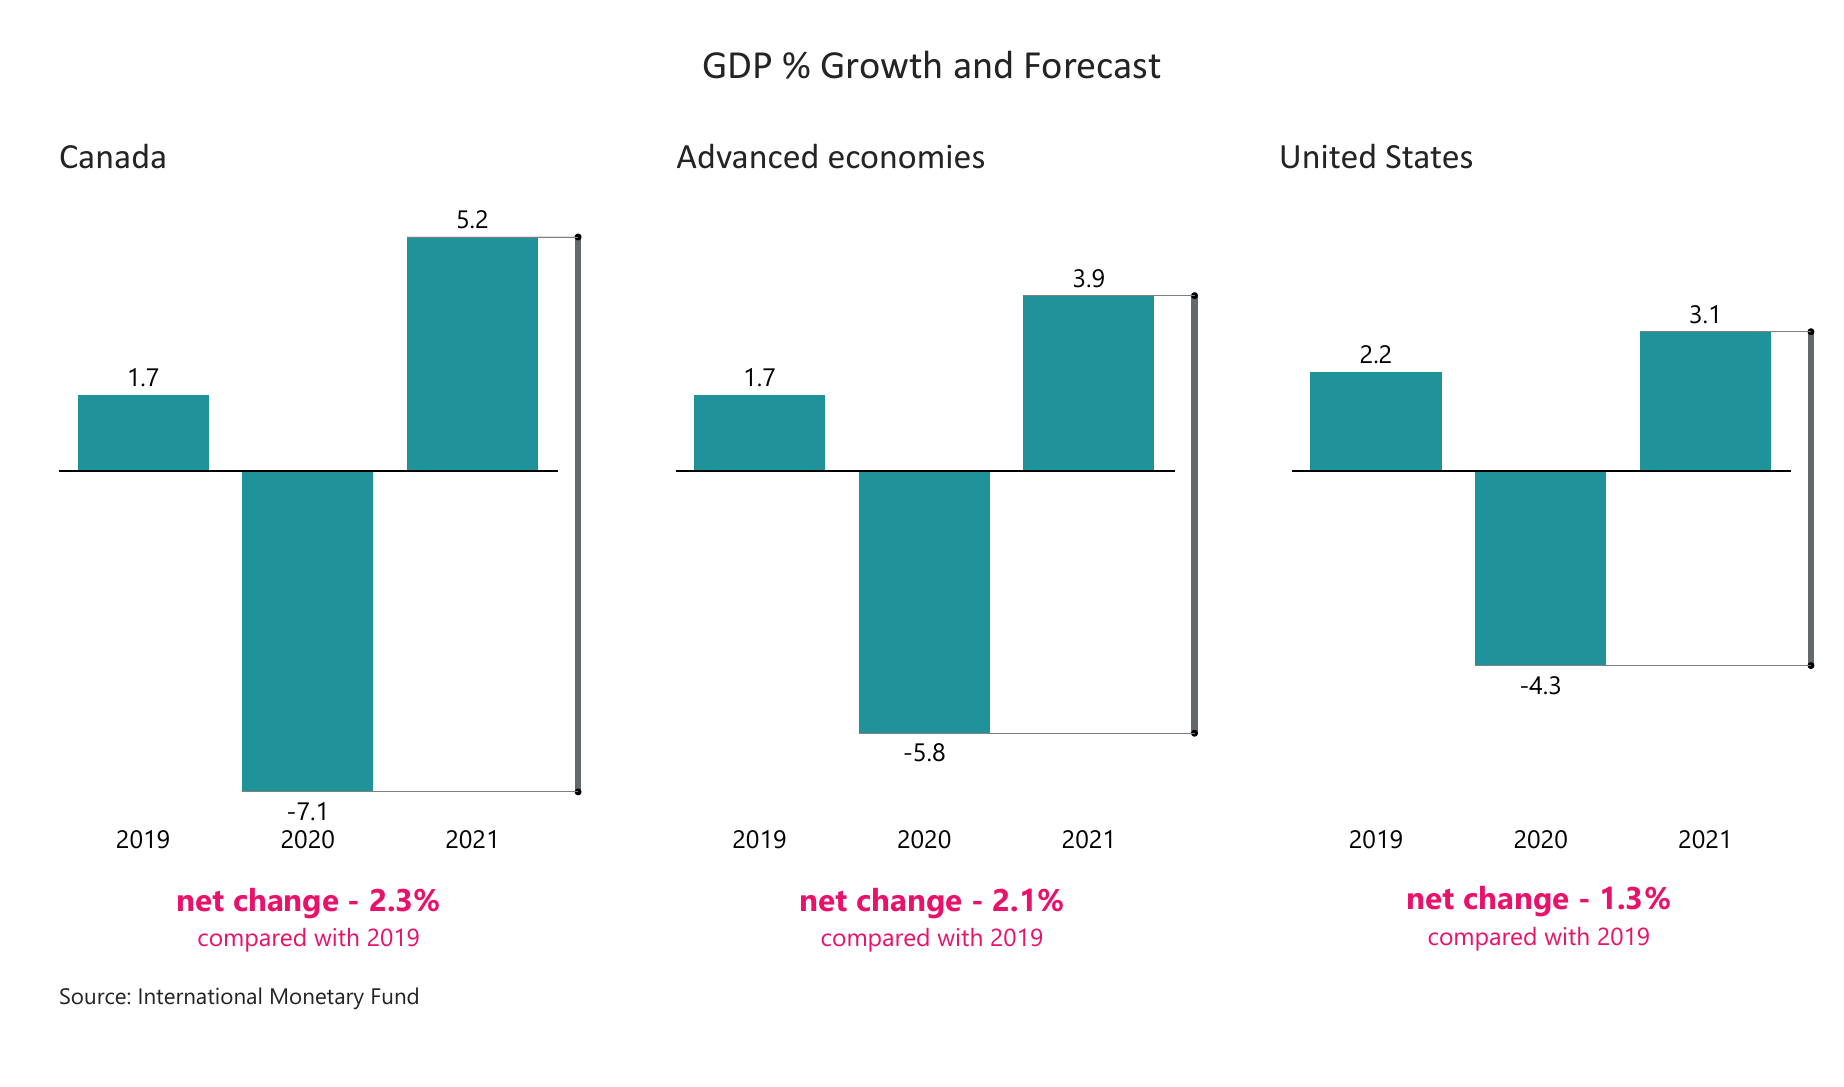 GDP % and Growth Forecast